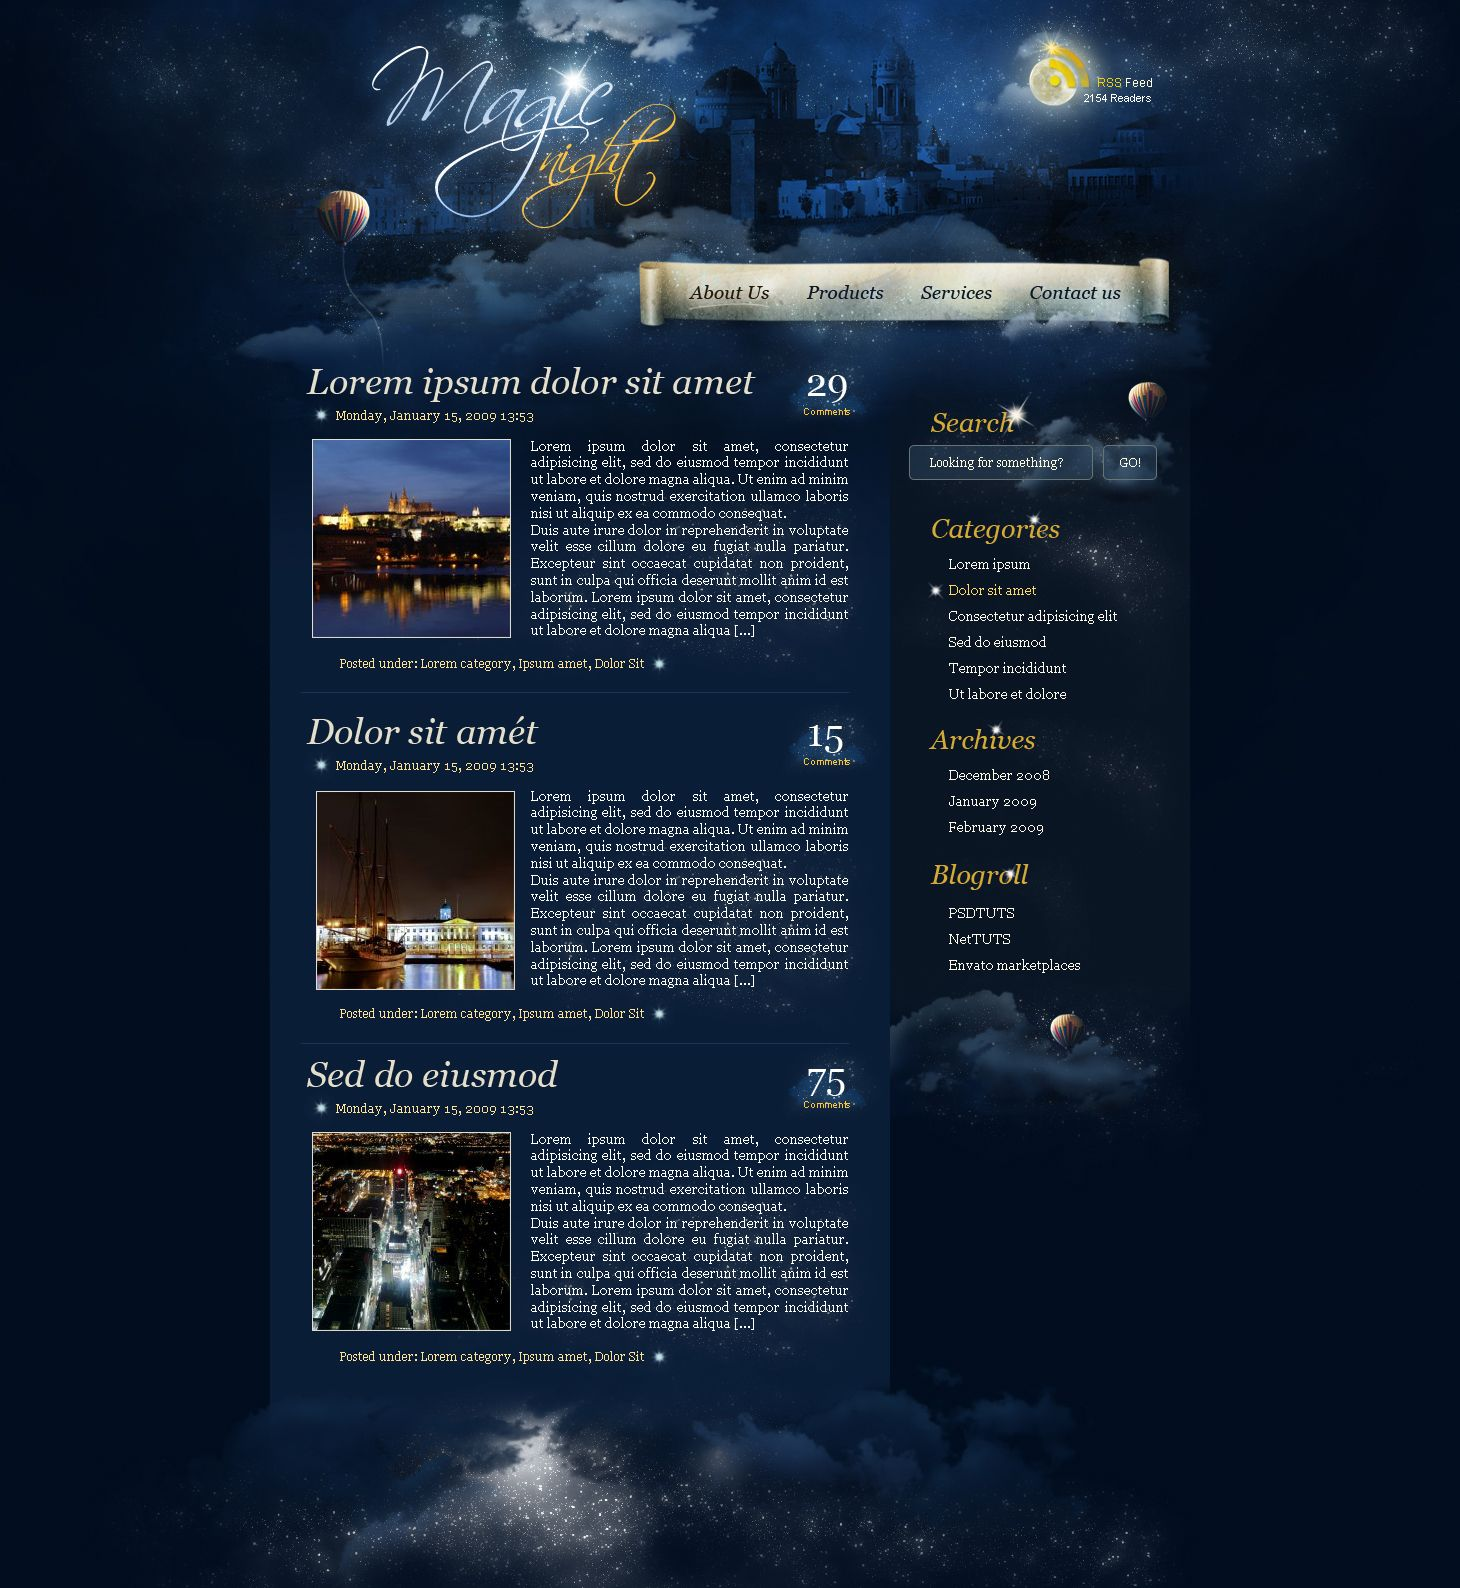 Create a magic night themed web design from scratch in photoshop create a magic night themed web design from scratch in photoshop via a href baditri Images